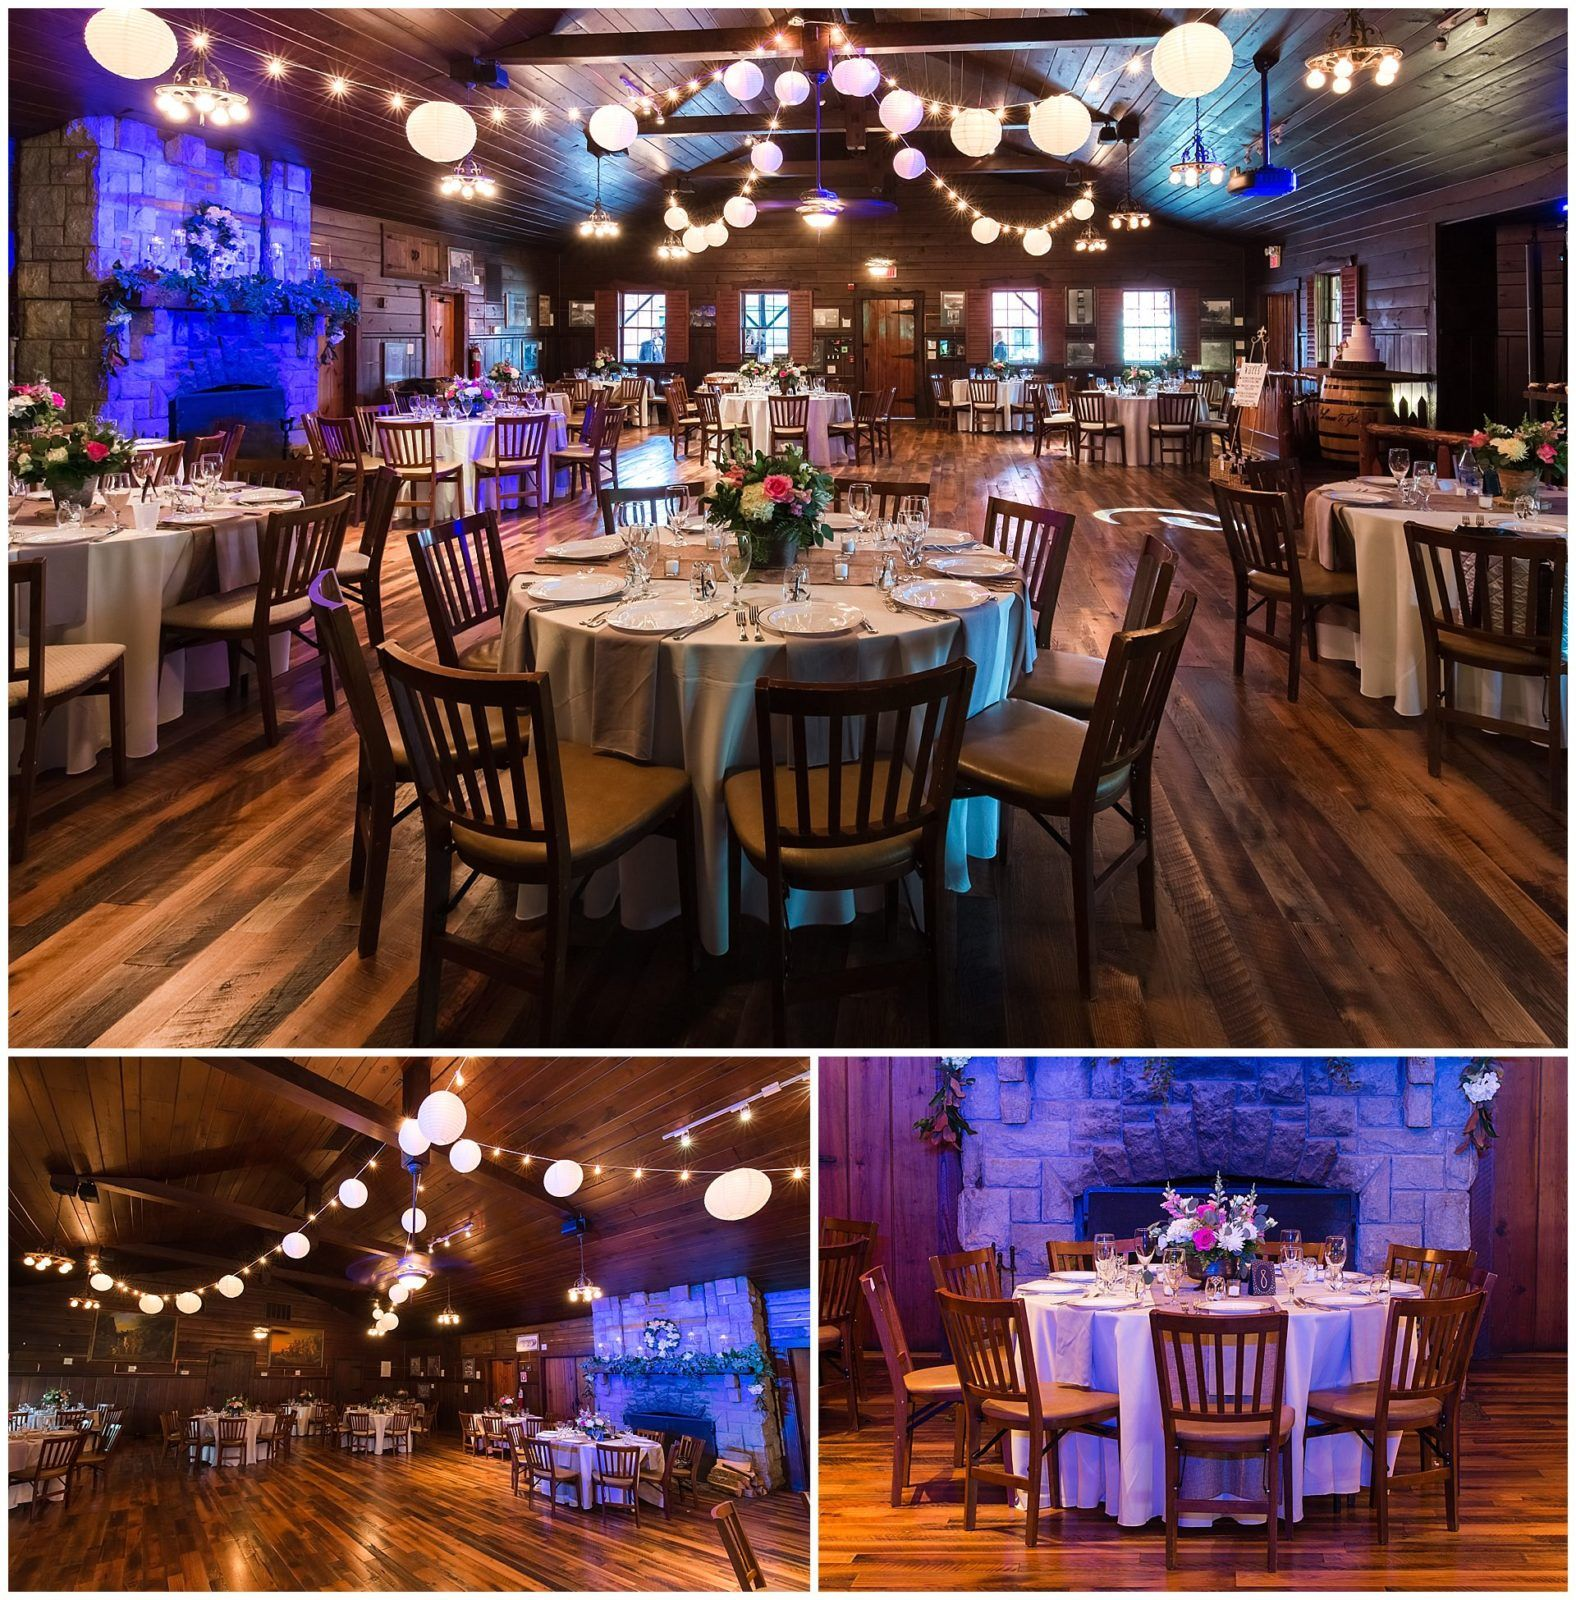 Spring Wedding Reception Ideas: Spring Wedding At Buffalo Trace Distillery In Frankfort